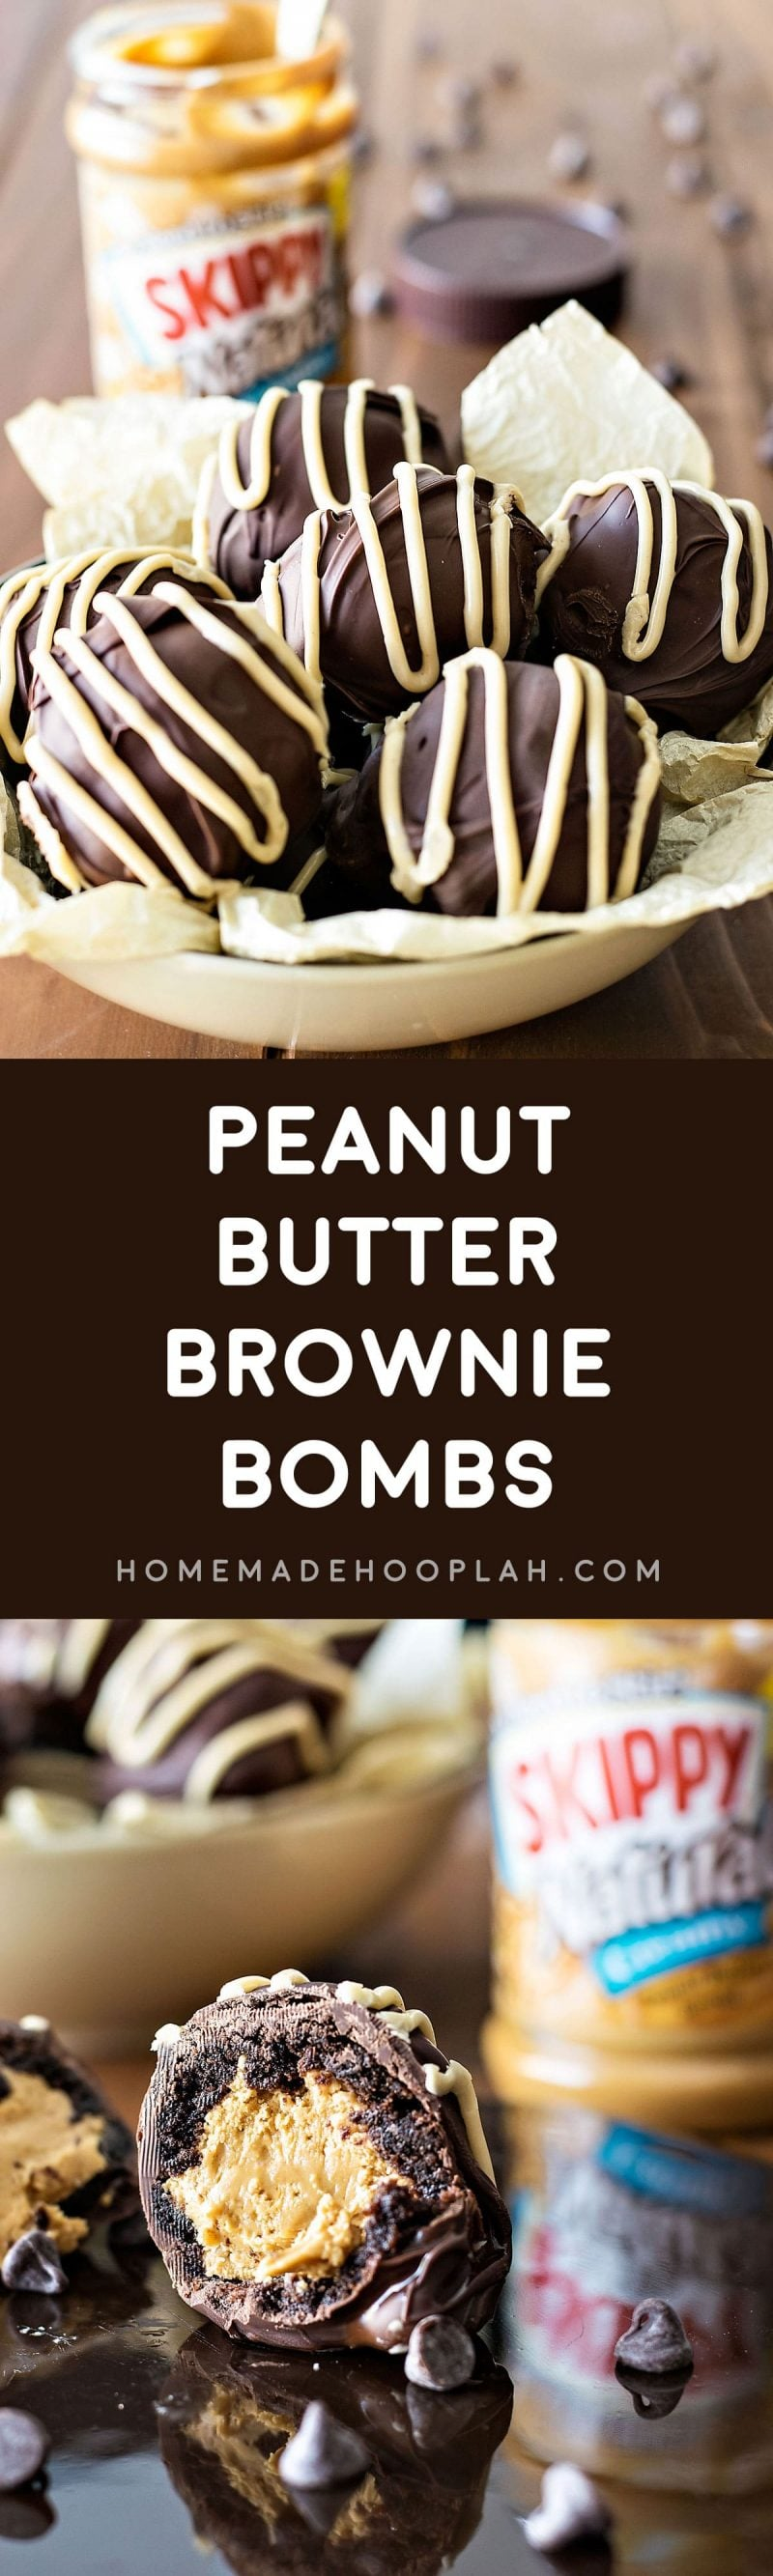 Peanut Butter Brownie Bombs! These peanut butter brownie bombs are perfect for all occasions! Rich brownies filled with peanut butter and covered with chocolate and peanut butter icing. | HomemadeHooplah.com